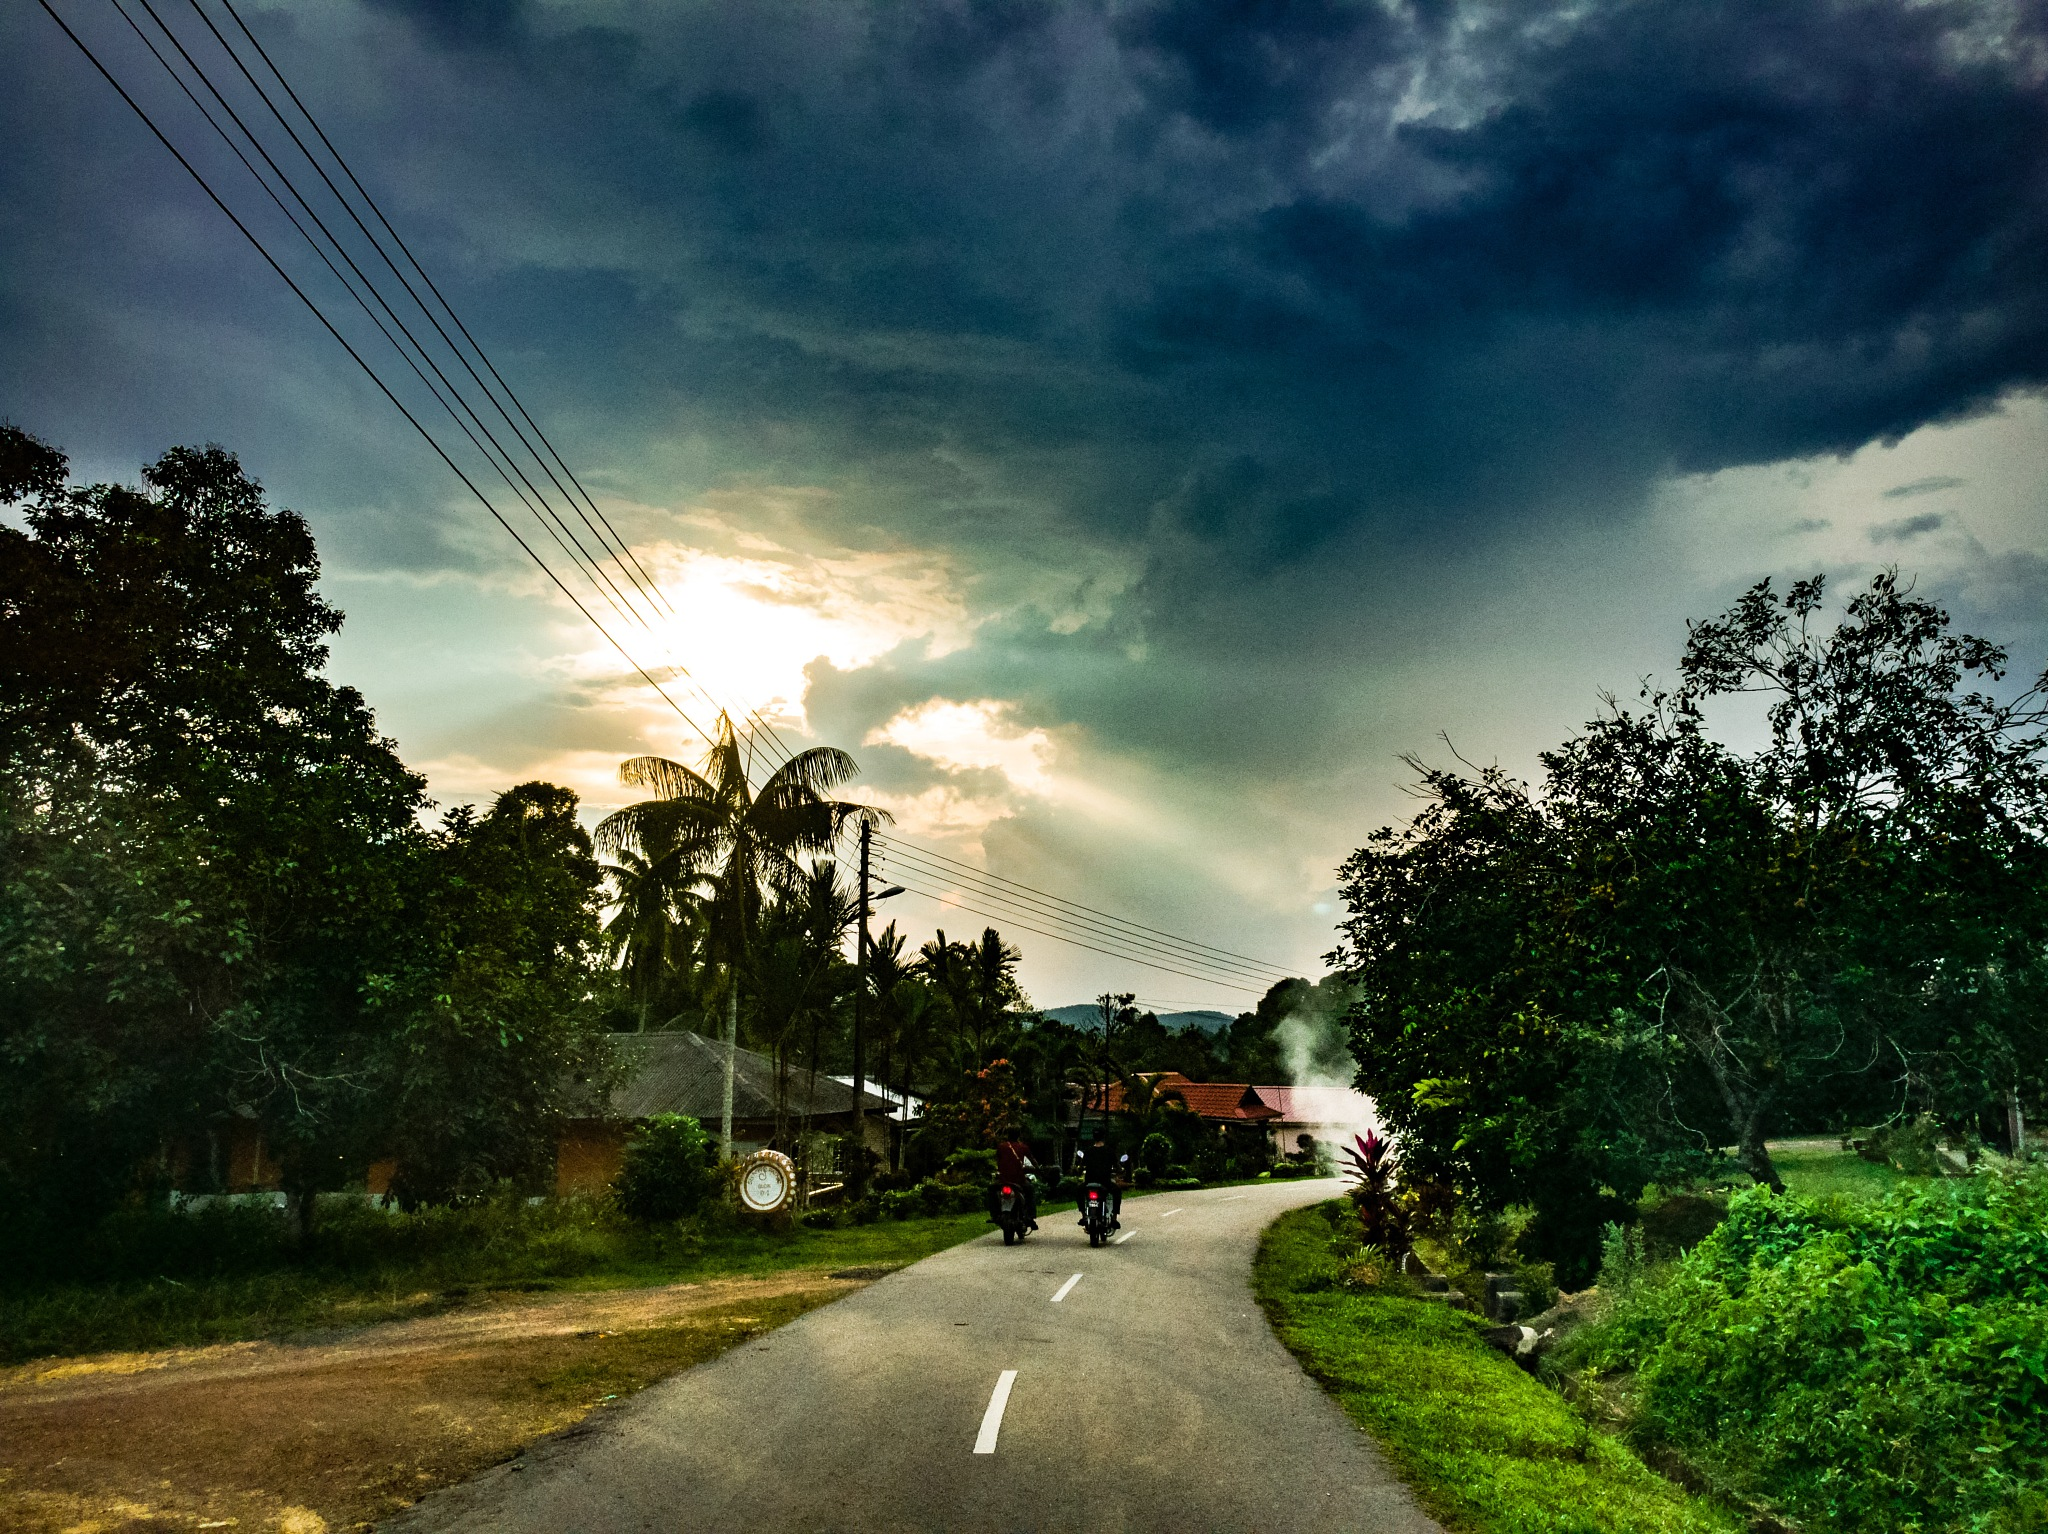 Darkness is coming  by Hanif Yusof